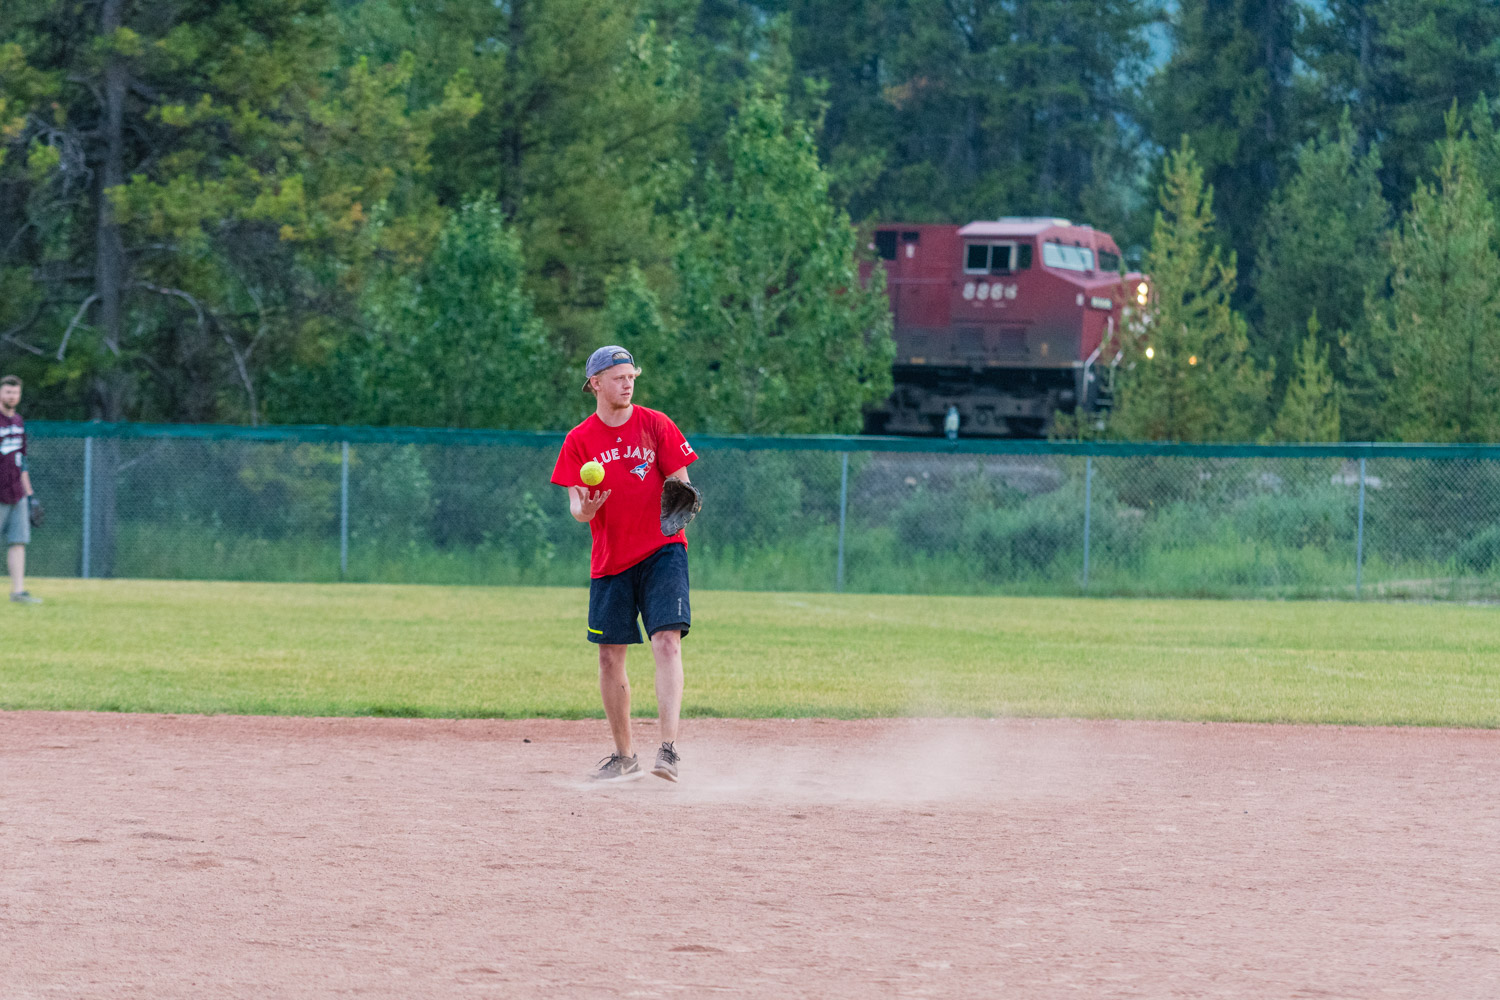 Action shot involving a train and softball. Not many photographers can deliver that!